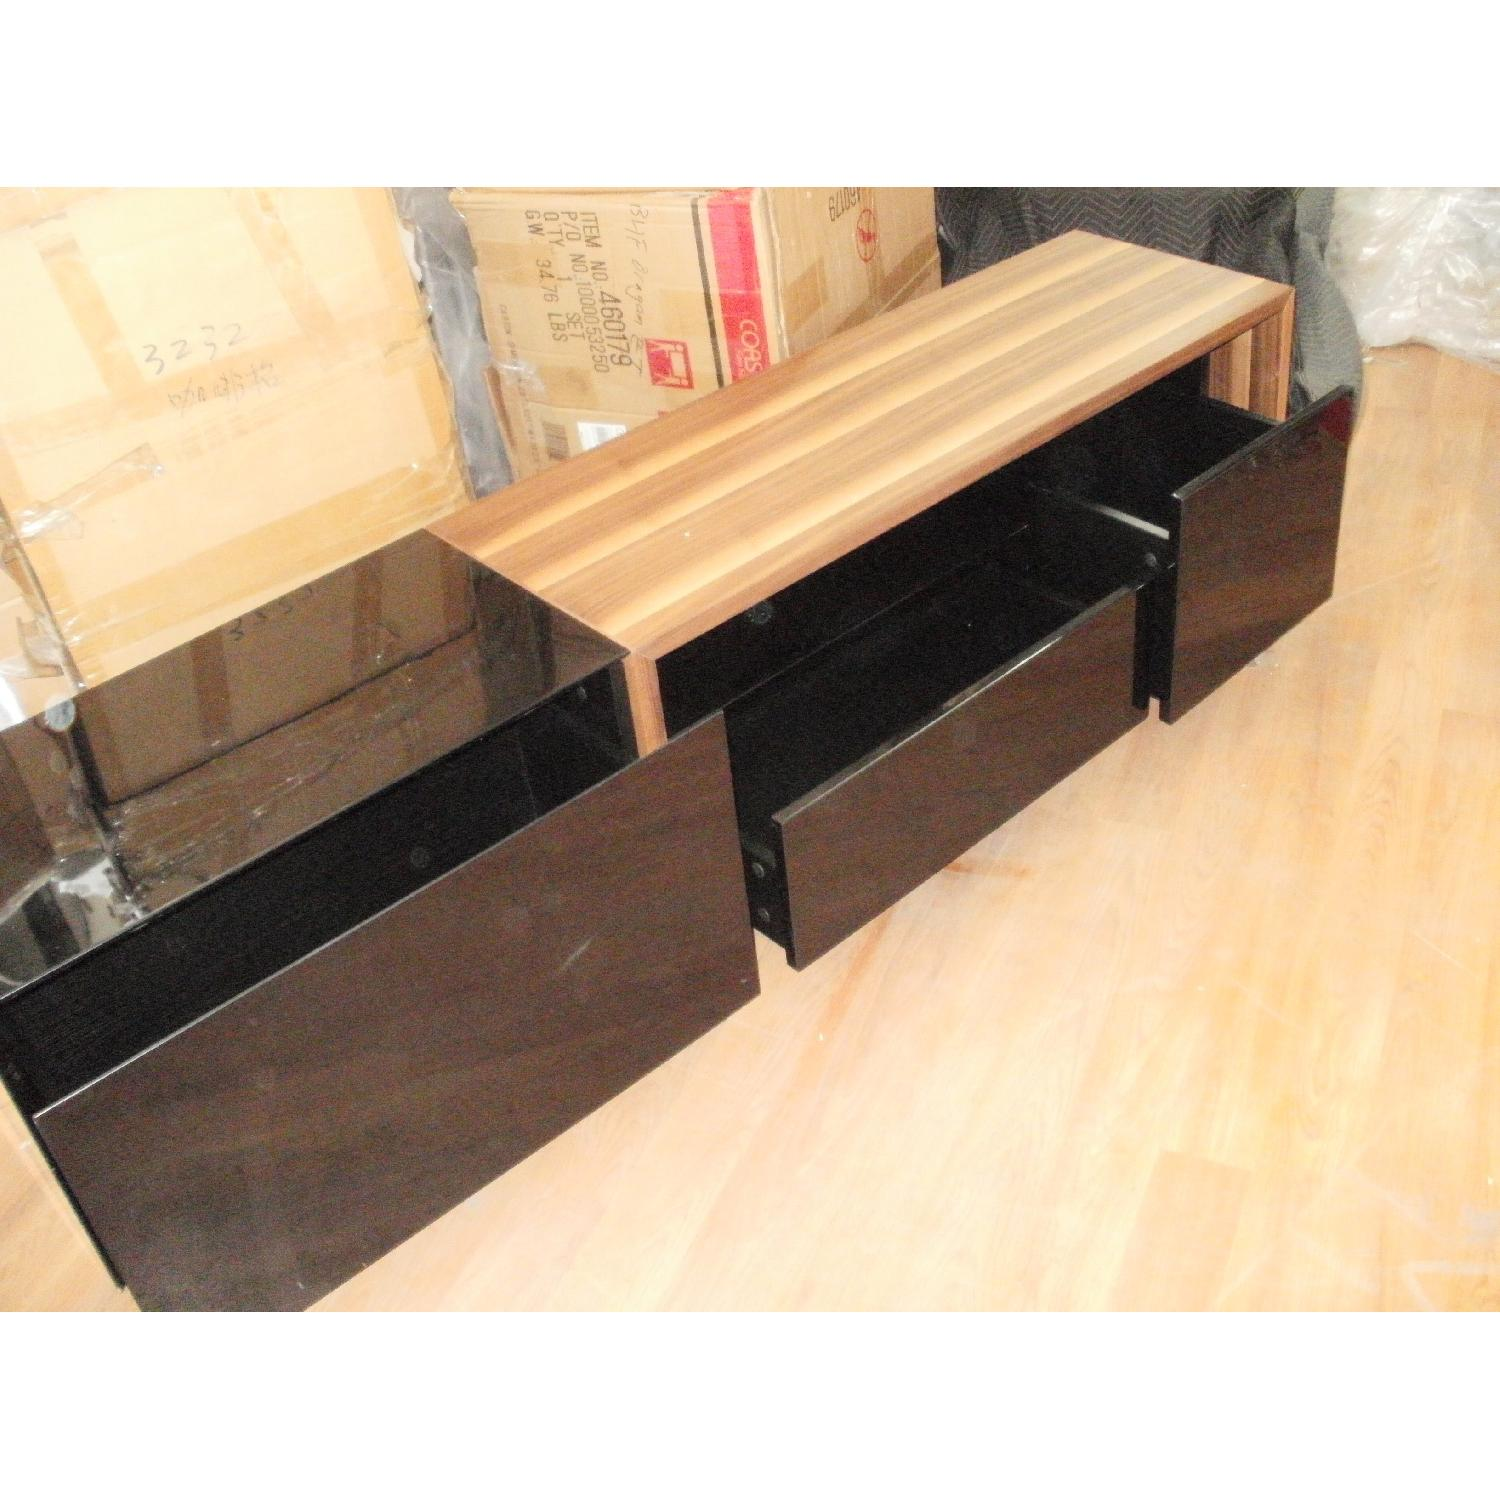 TV Stand w/ Walnut & Black Gloss Finish & Drawers - image-2